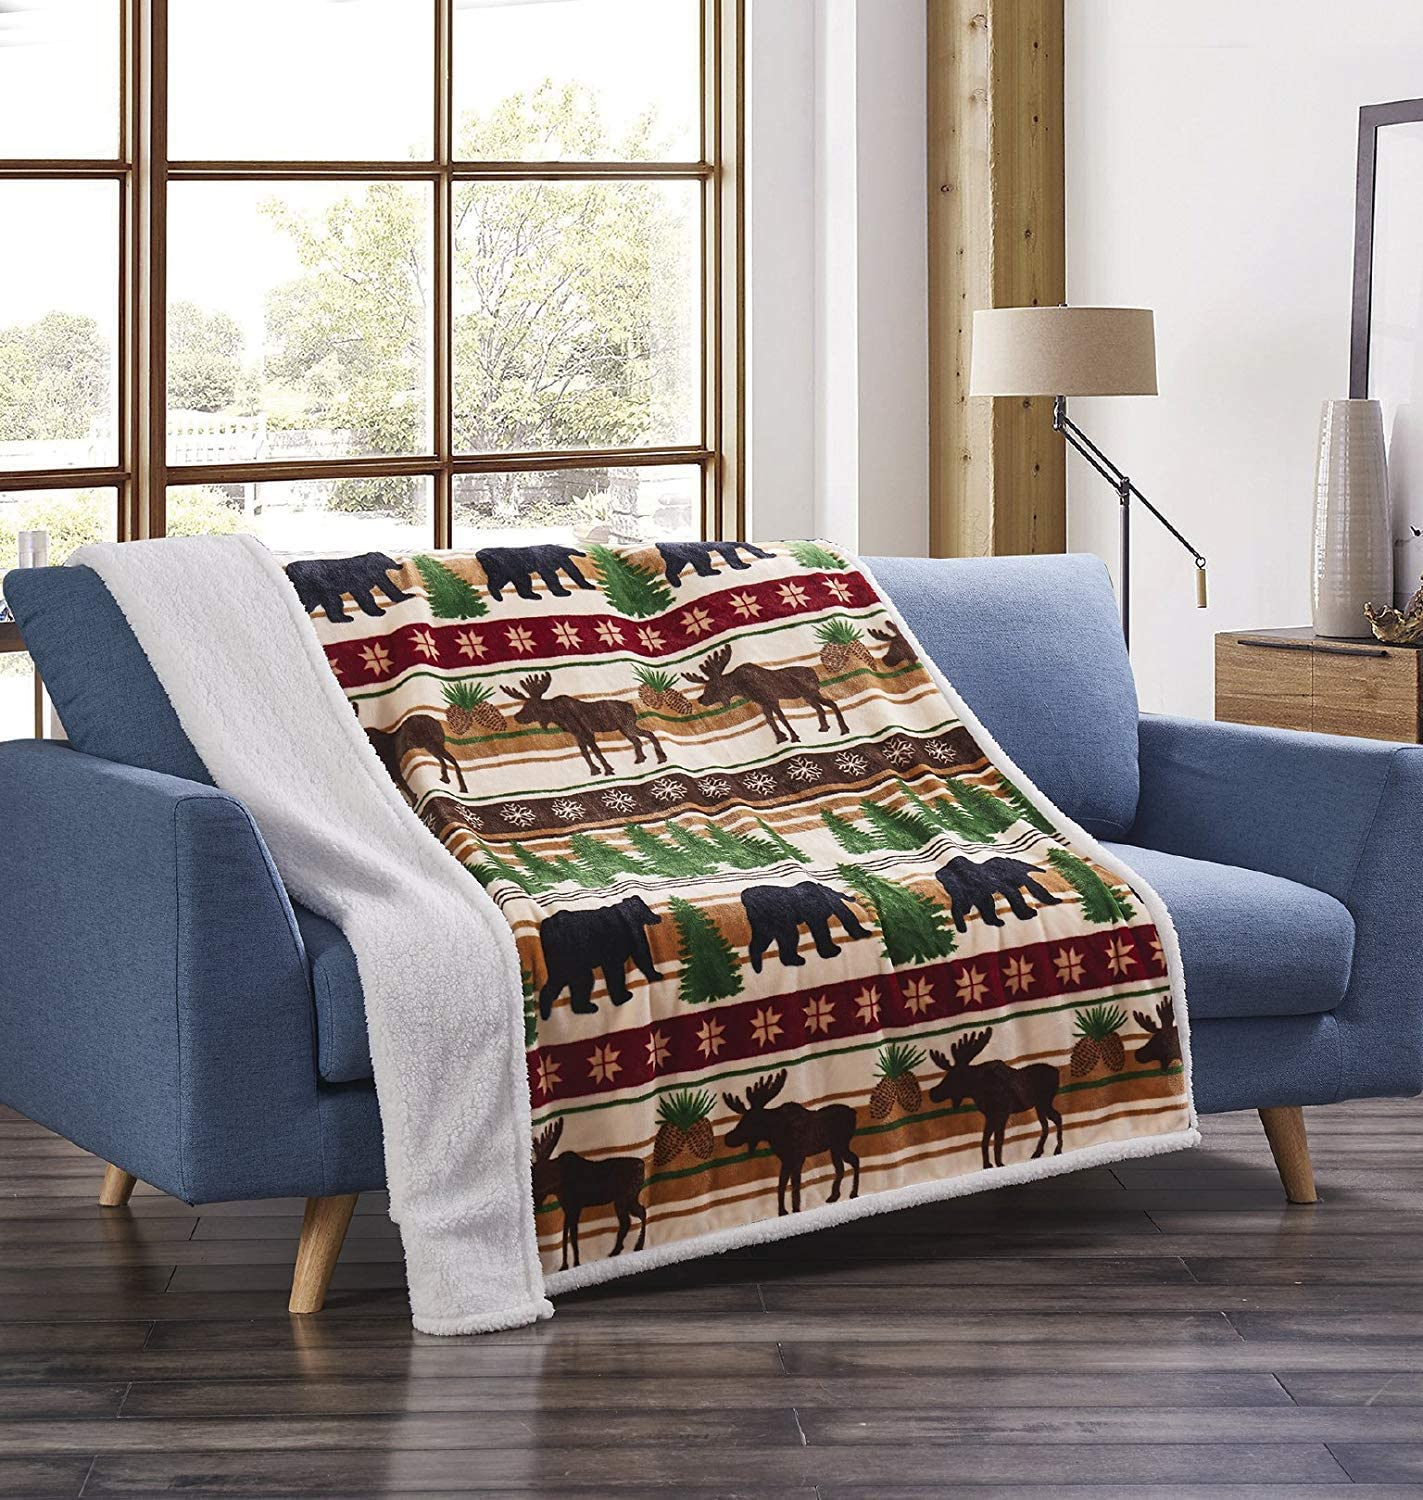 Virah Bella Christmas Max 59% OFF Wilderness Bear Throw Recommendation and Flannel Deer wit